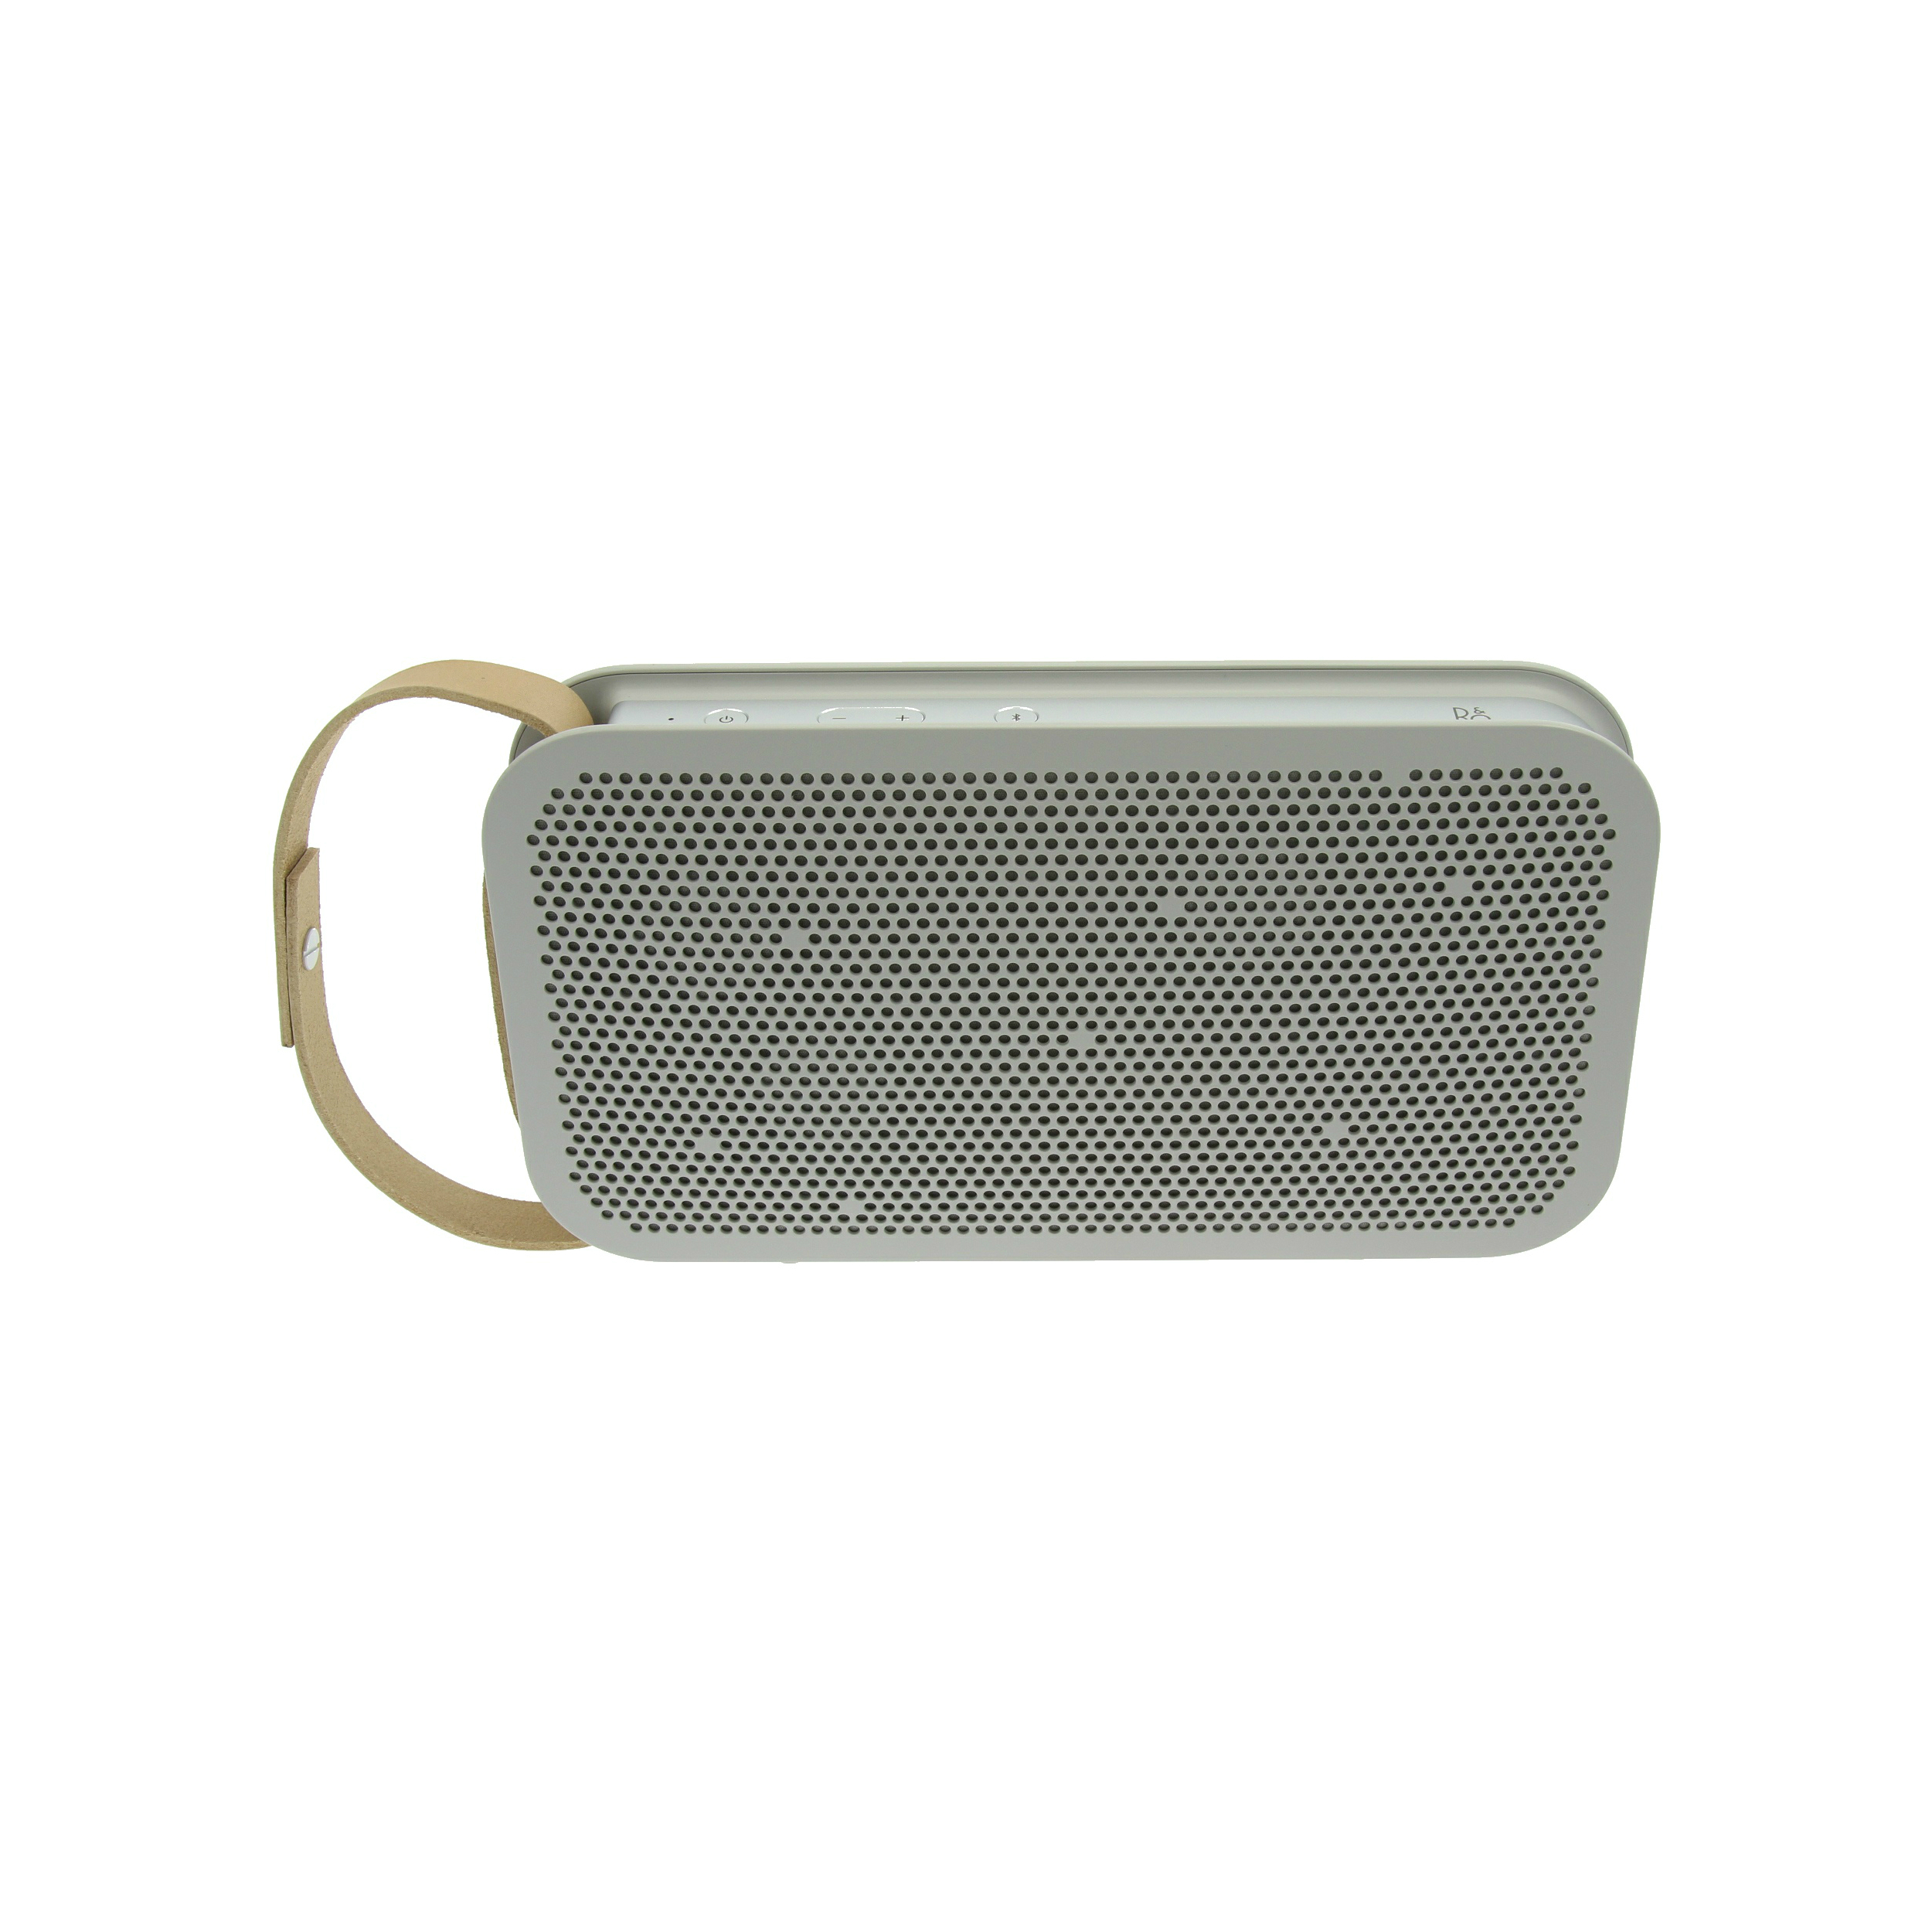 New Bang & Olufsen Beoplay A2 Portable Bluetooth Speaker Silver 1290963 by Bang %26 Olufsen